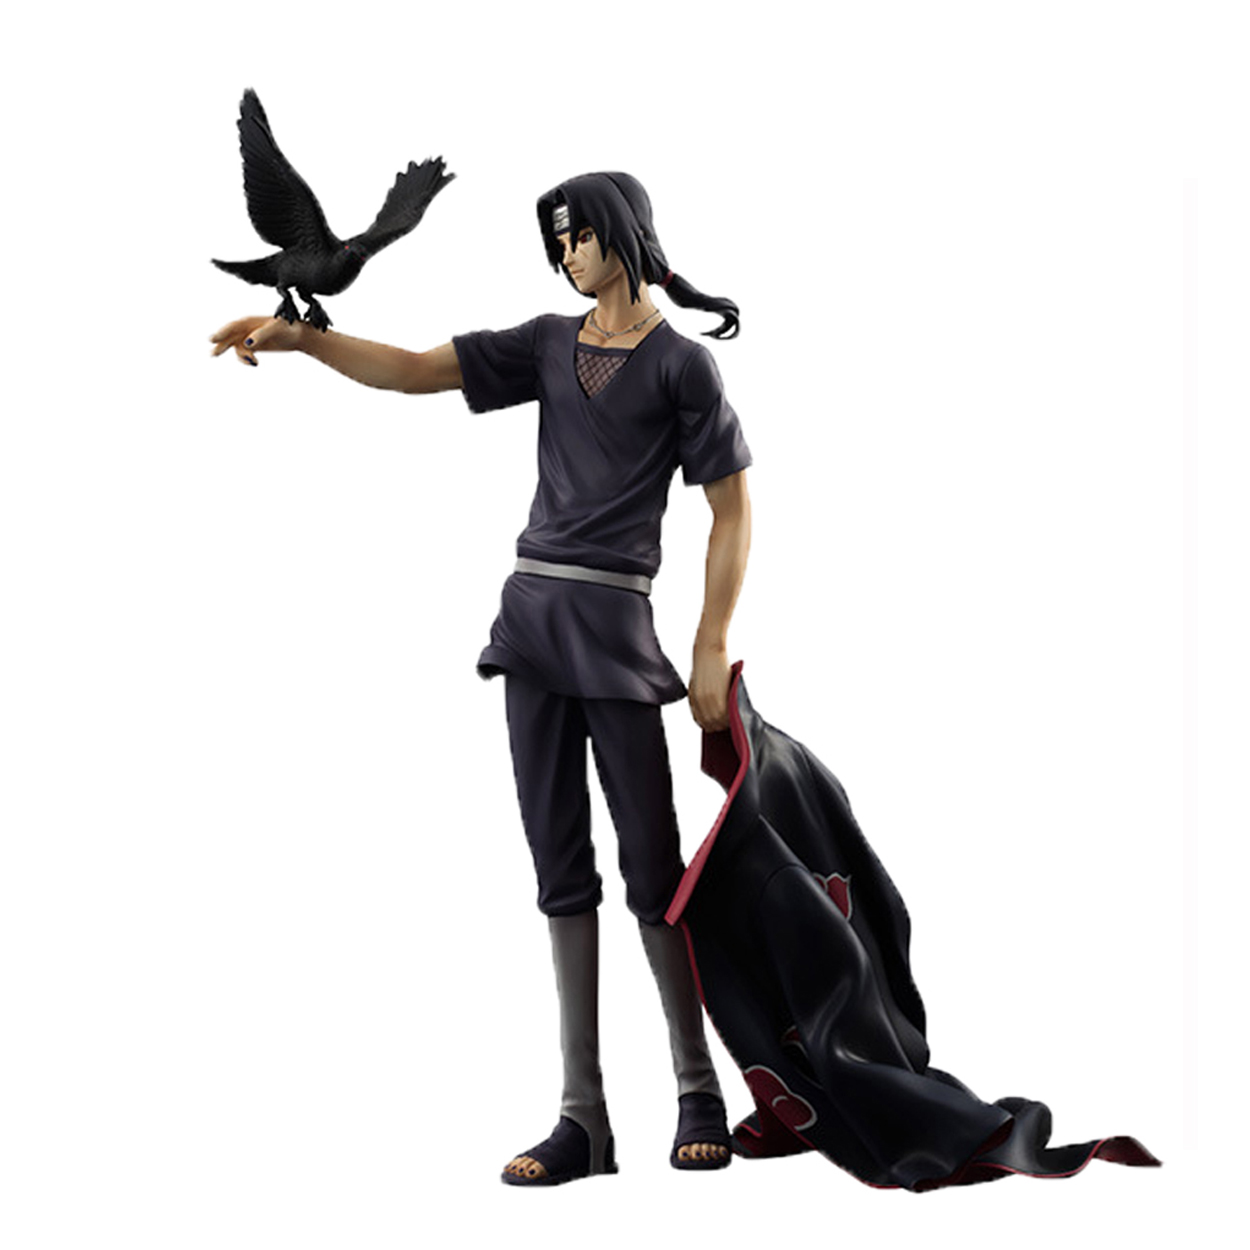 Chanycore 23cm Hot Anime Naruto NARUTO Uchiha Itachi MEGAHOUSE MH GEM PVC Action Figure Collection Model Toys Christmas Gifts<br>